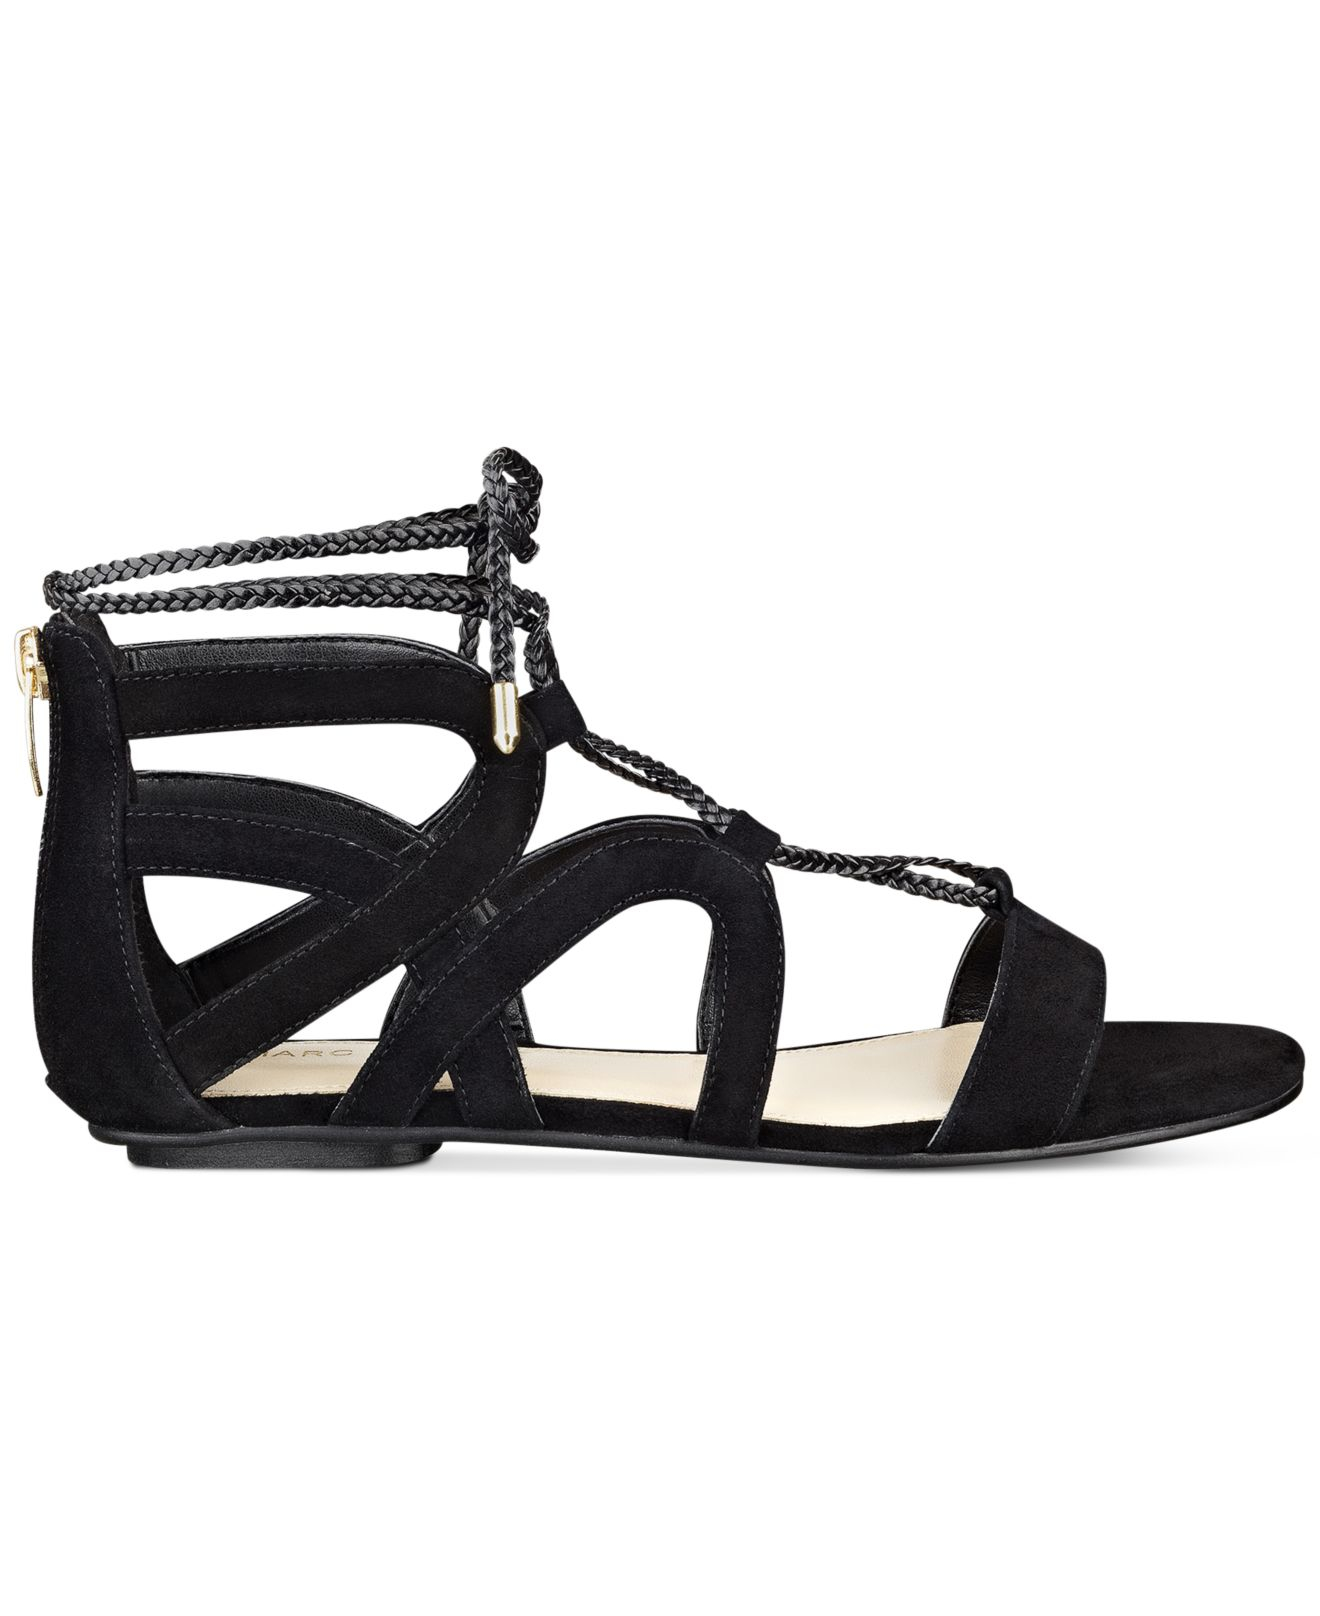 Marc Fisher Kapre Lace Up Ankle Tie Gladiator Sandals In